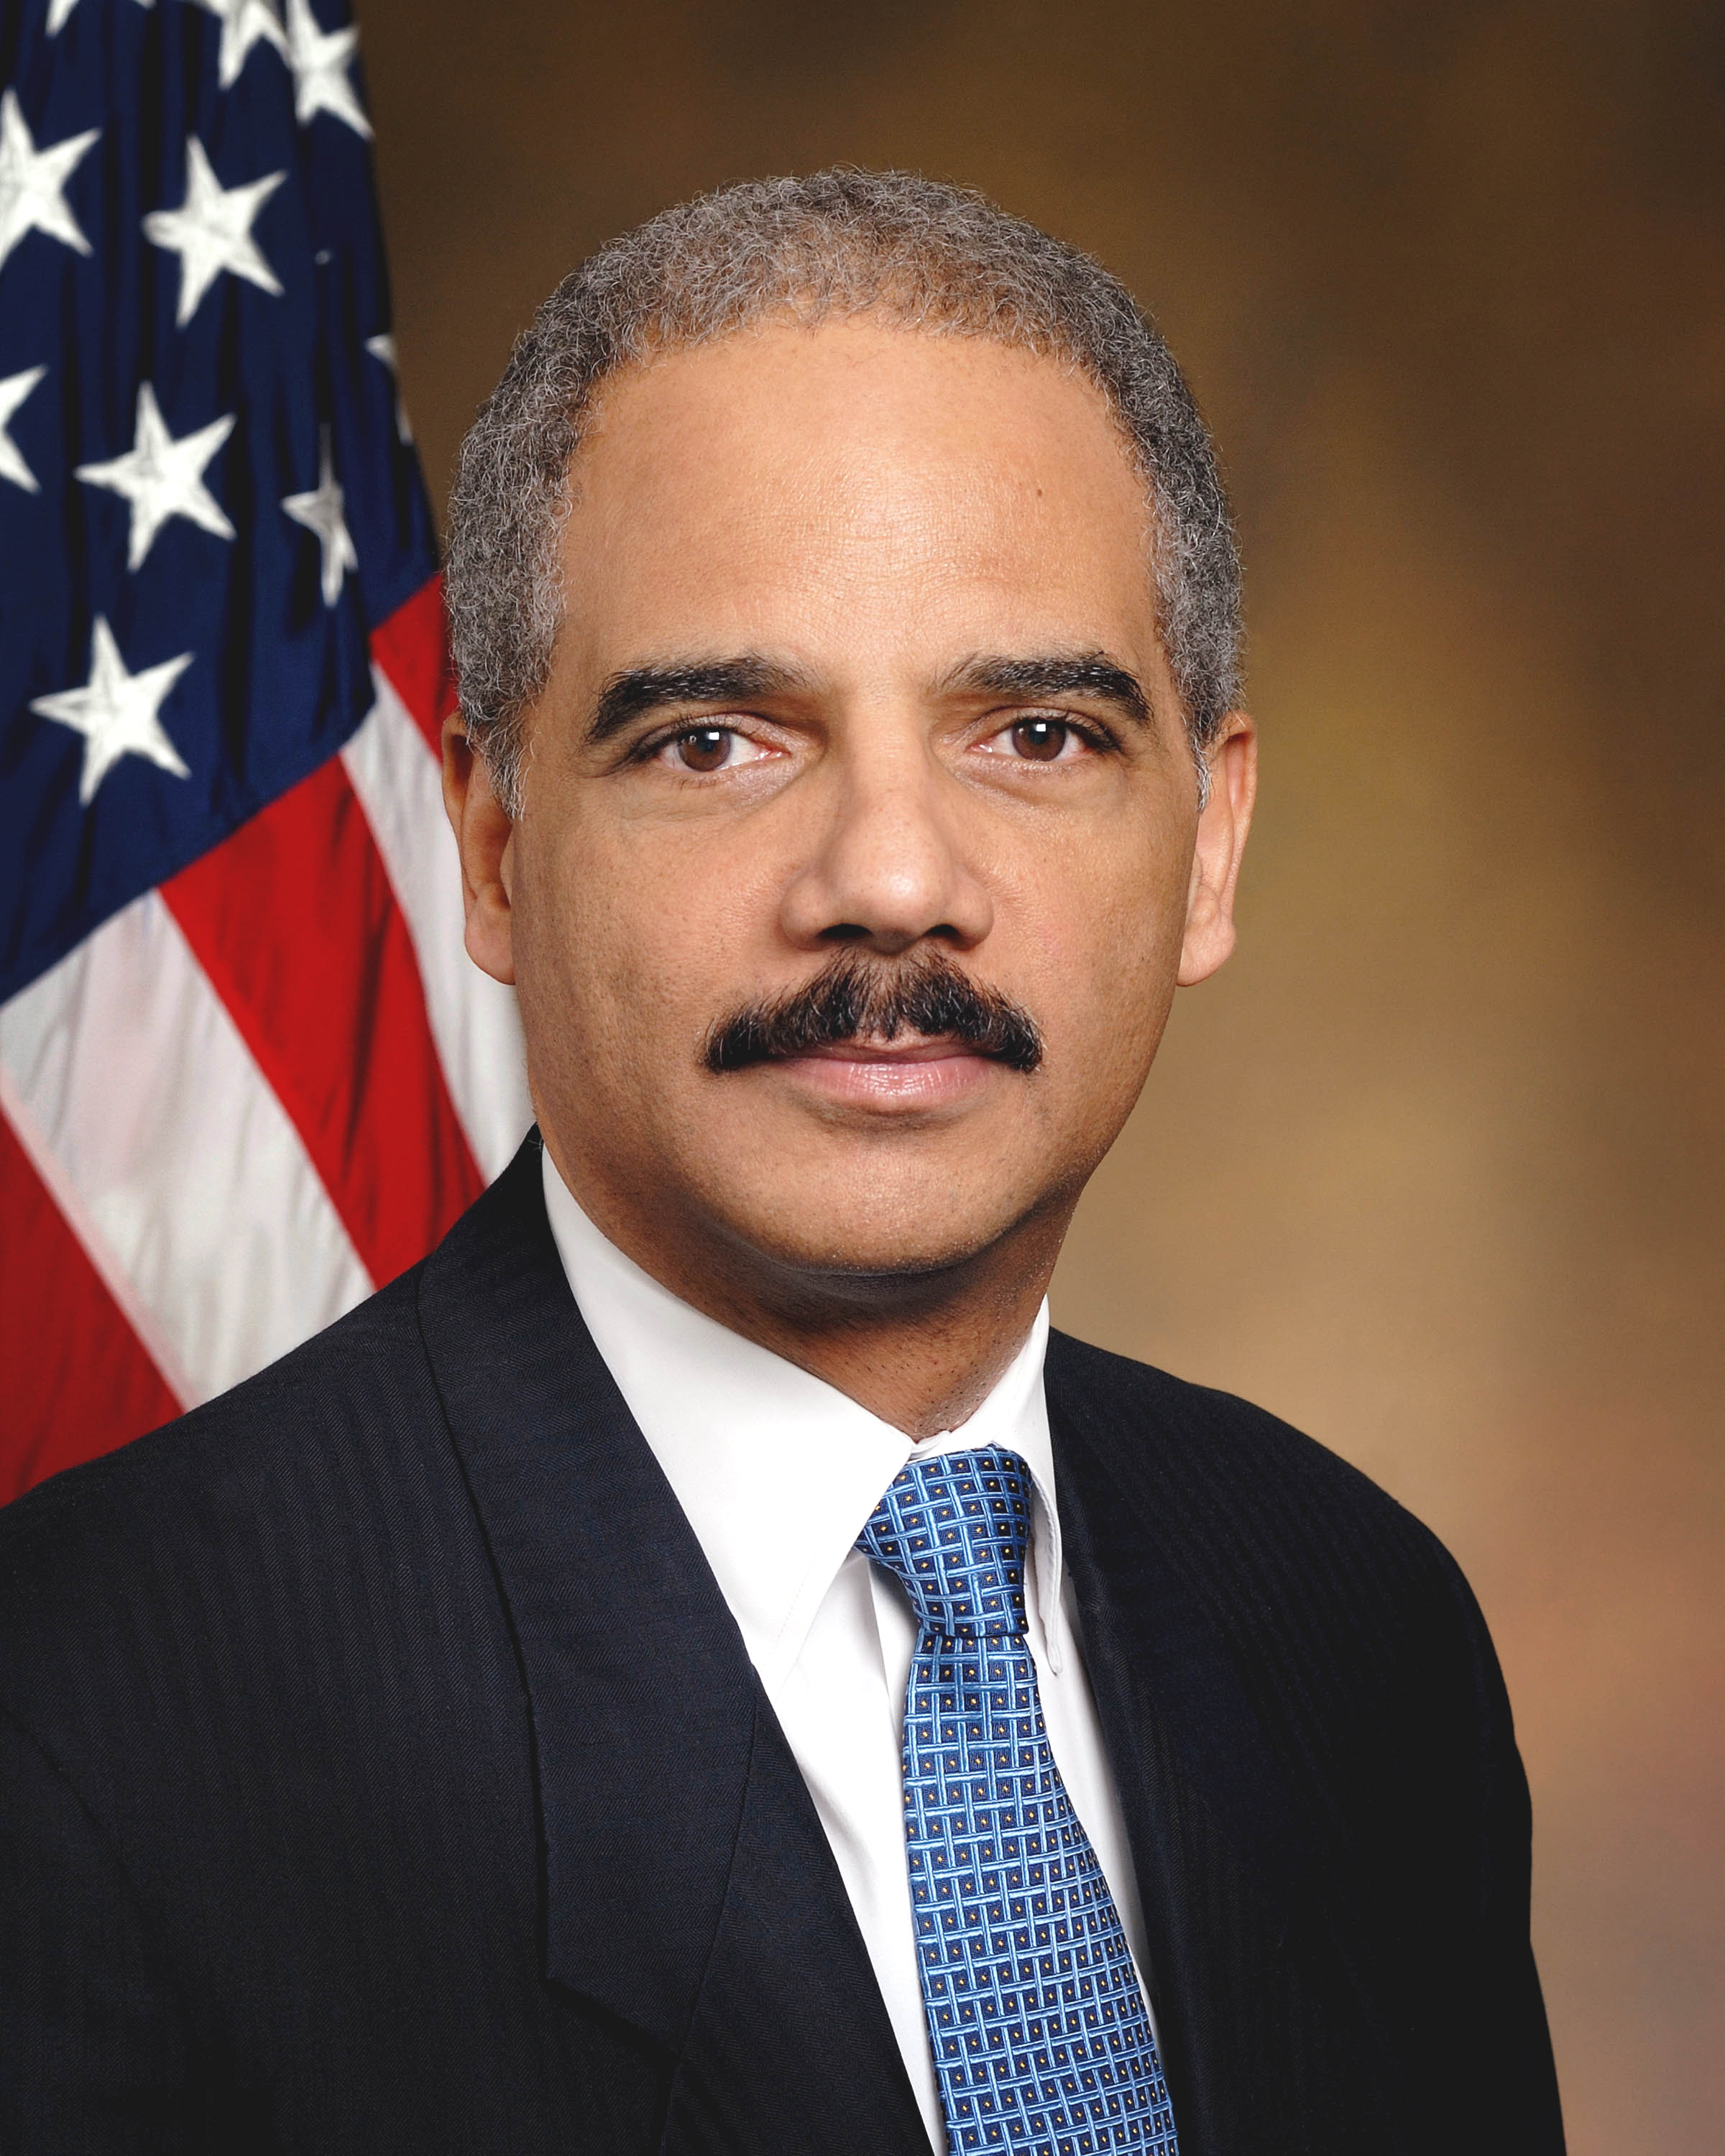 http://upload.wikimedia.org/wikipedia/commons/6/6a/Eric_Holder_official_portrait.jpg